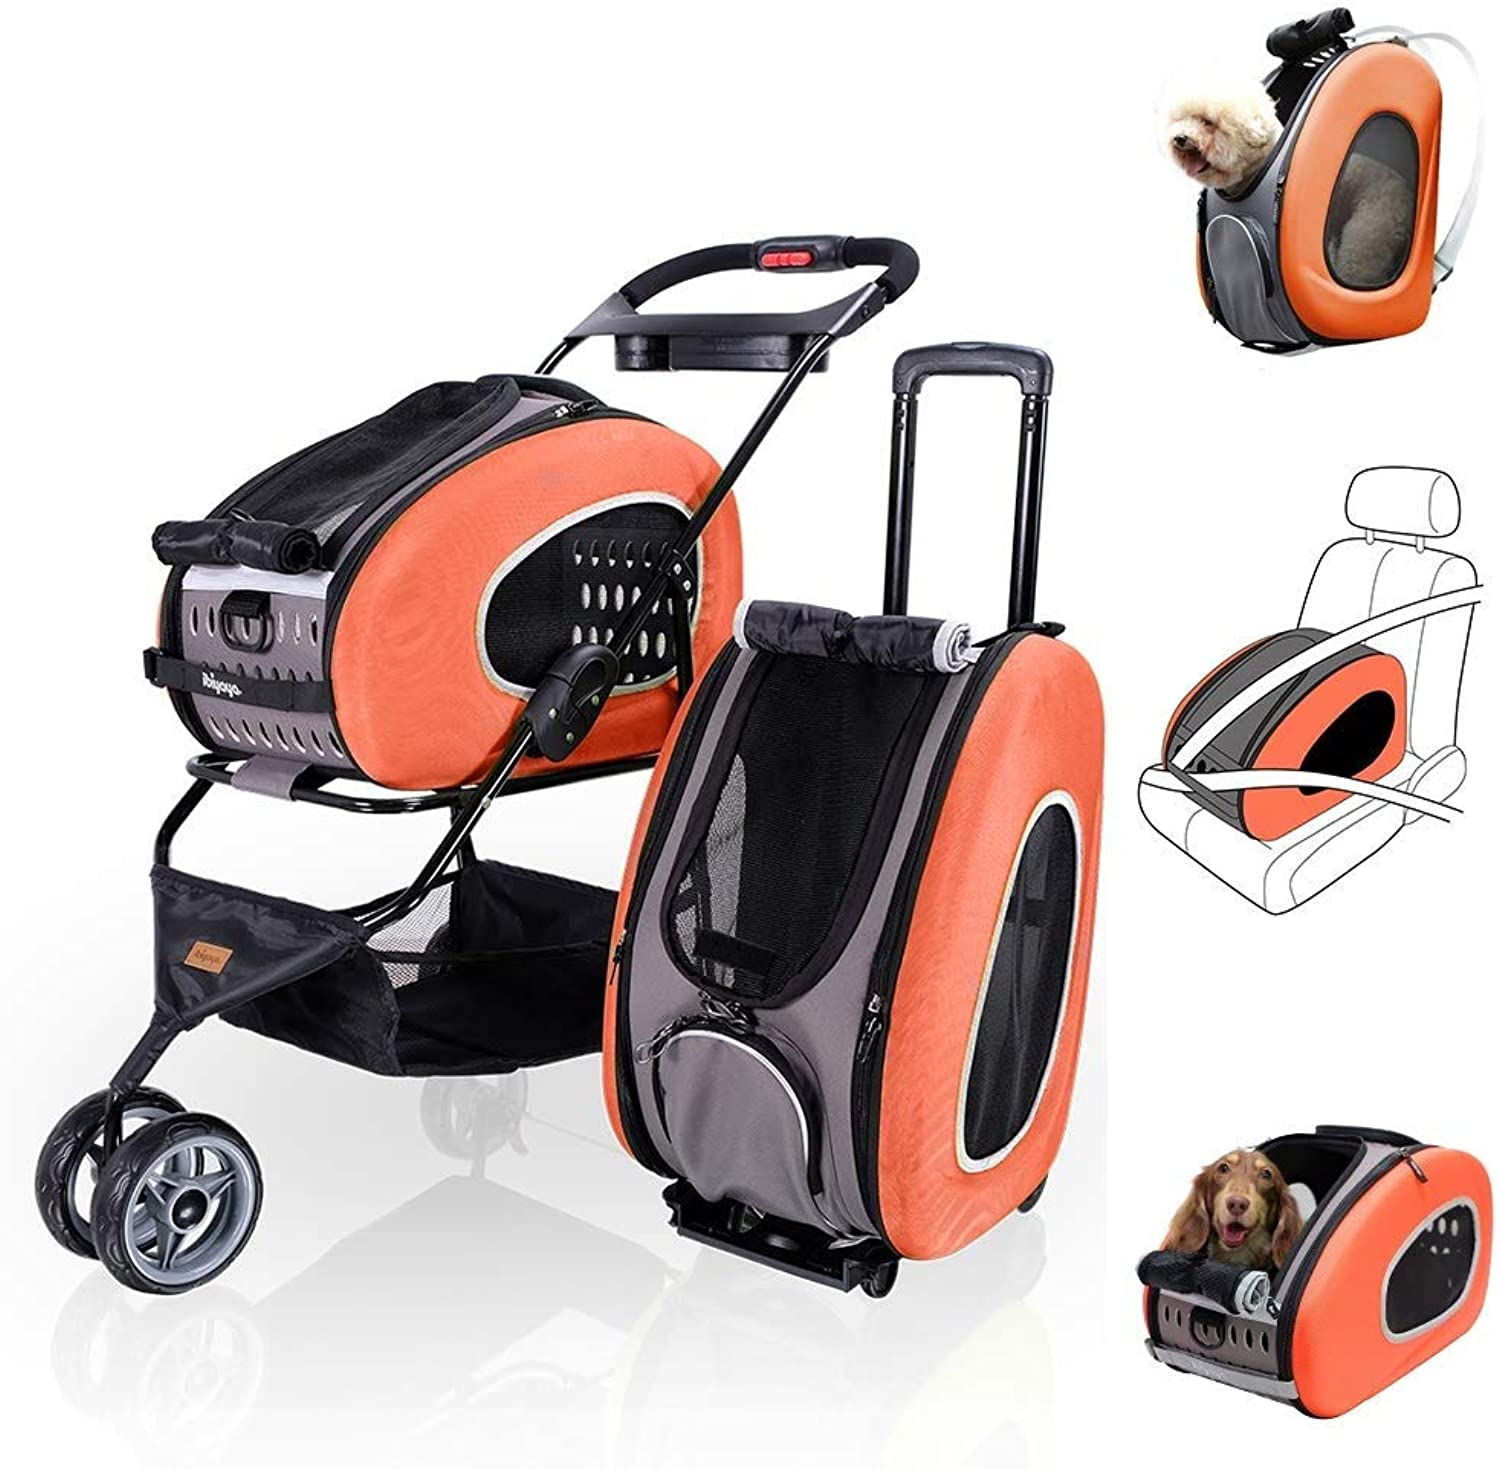 MC.PIG Pet Folding Stroller 5 in 1 Pet Carrier + Backpack + CarSeat + Pet Carrier Stroller + Carriers with Wheels for Dogs and Cats All in ONE (color   orange)